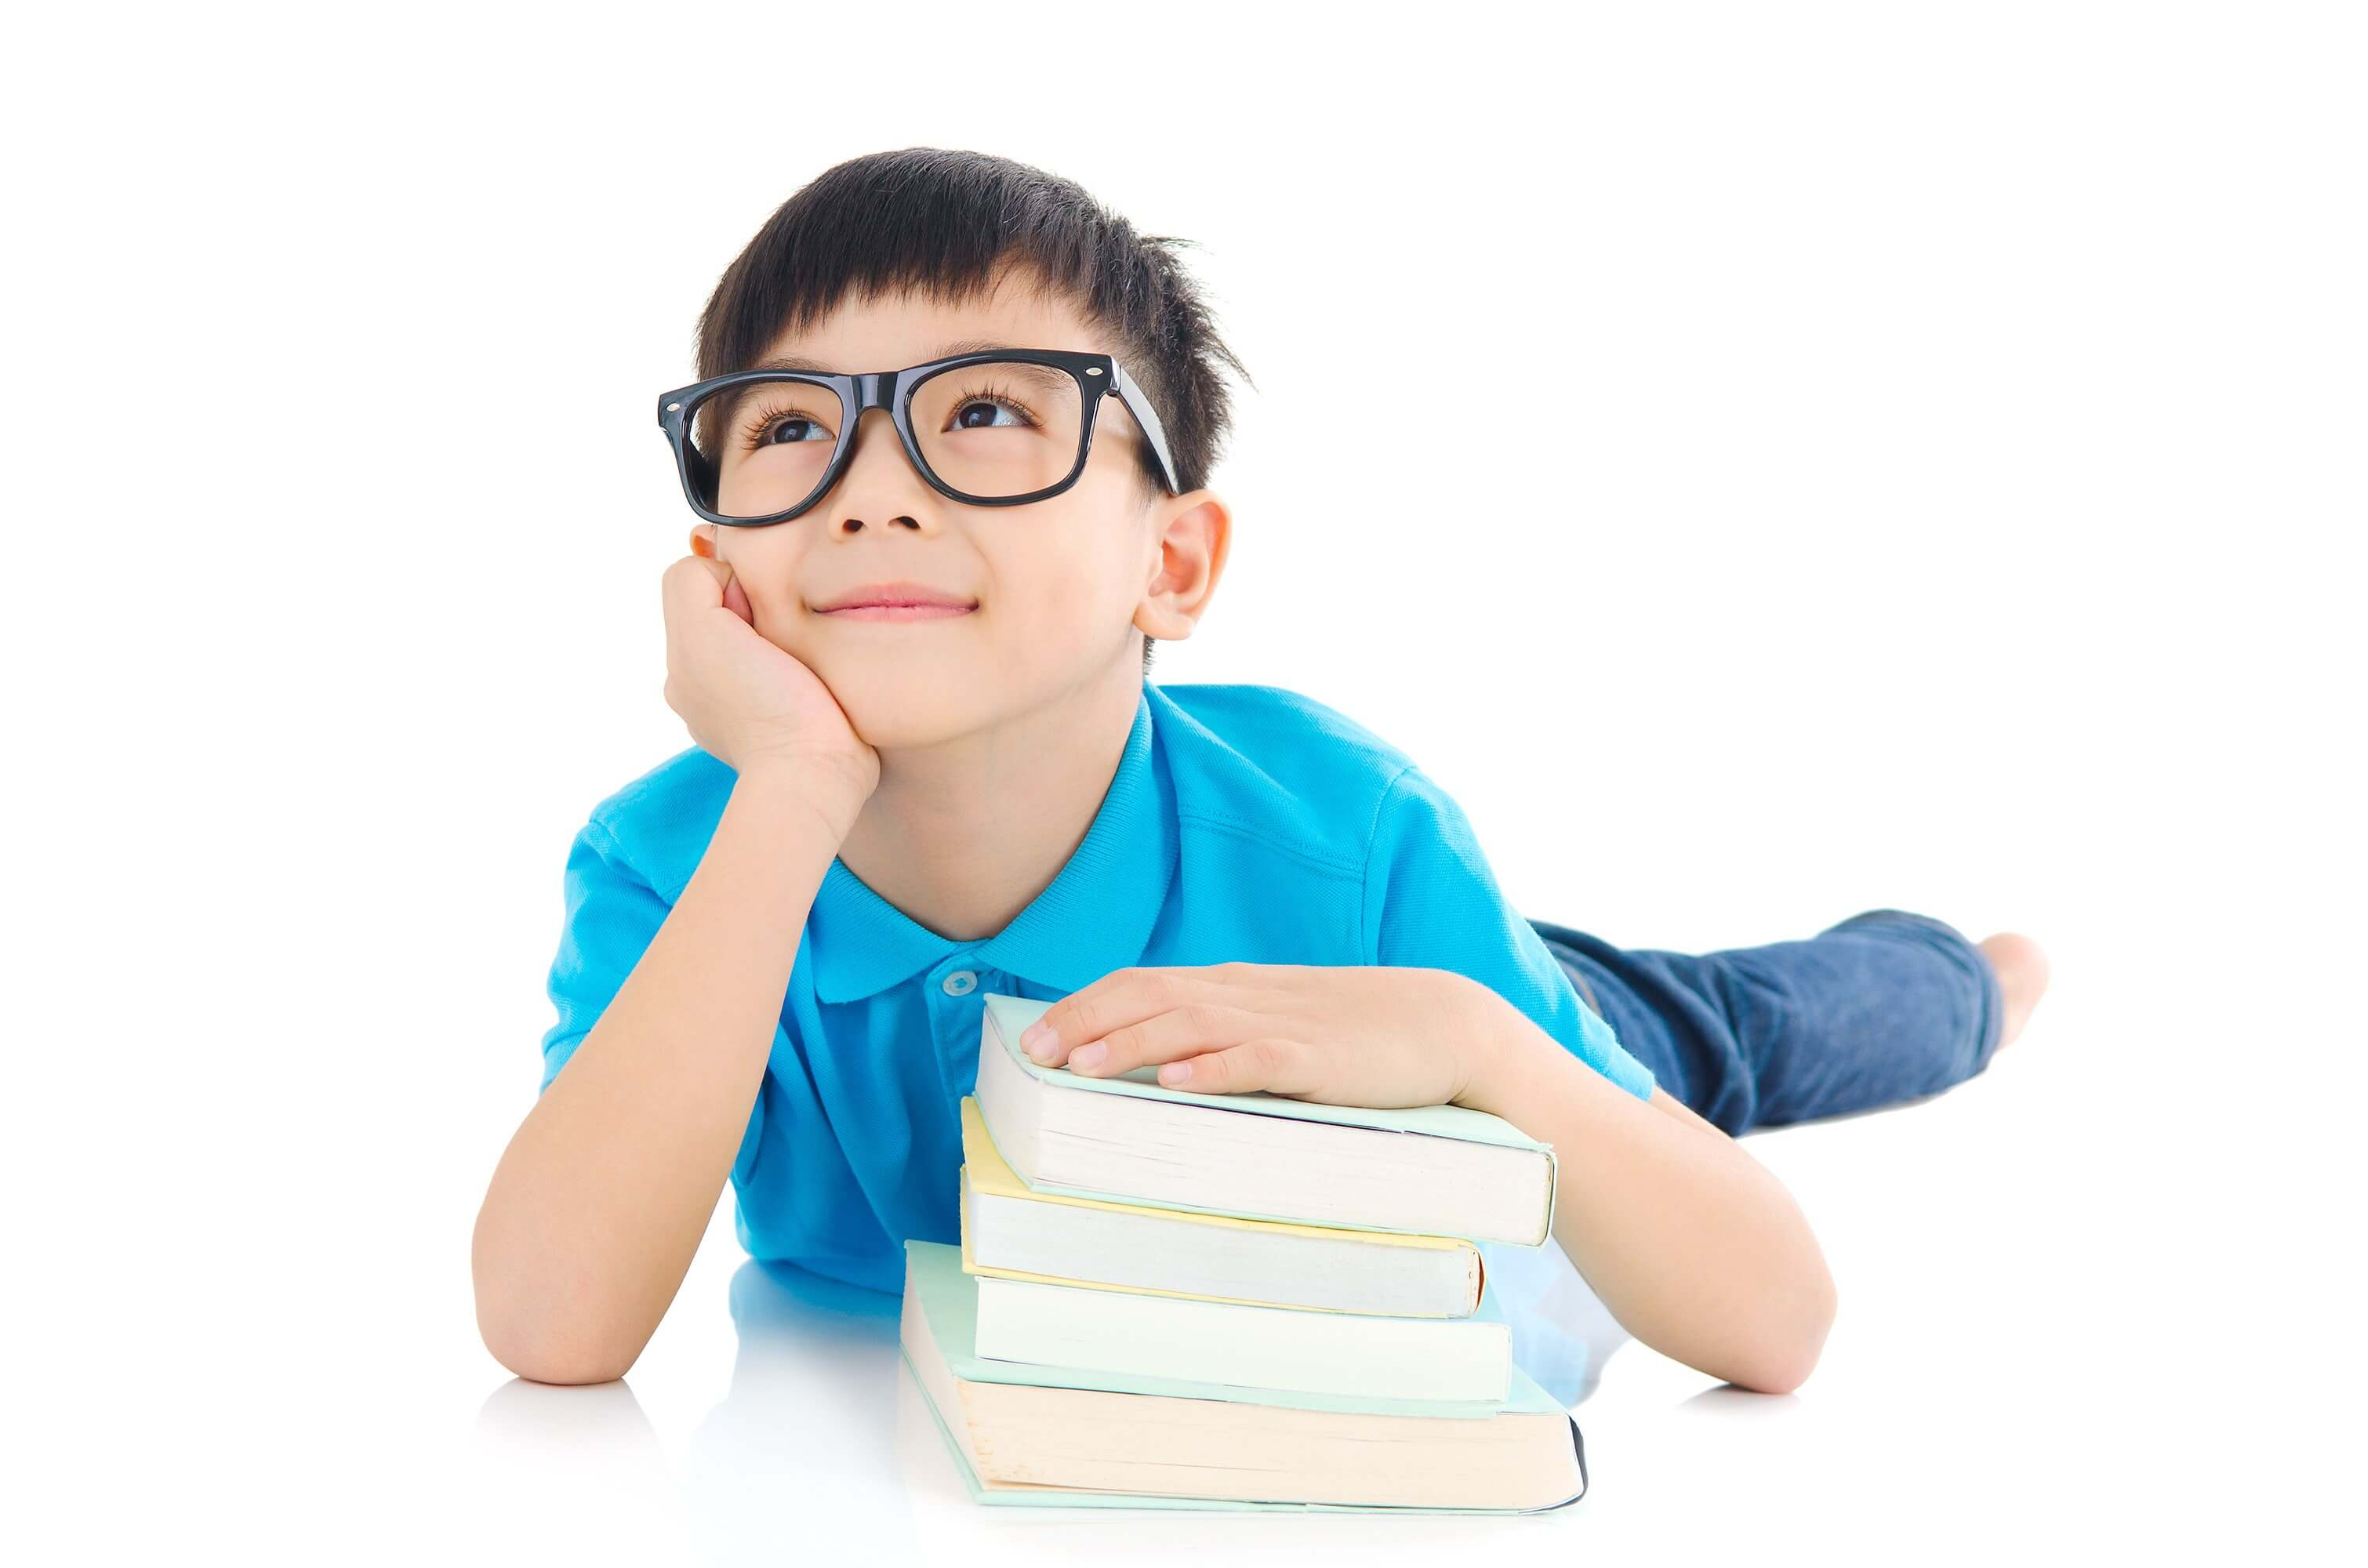 Asian Kid With Glasses